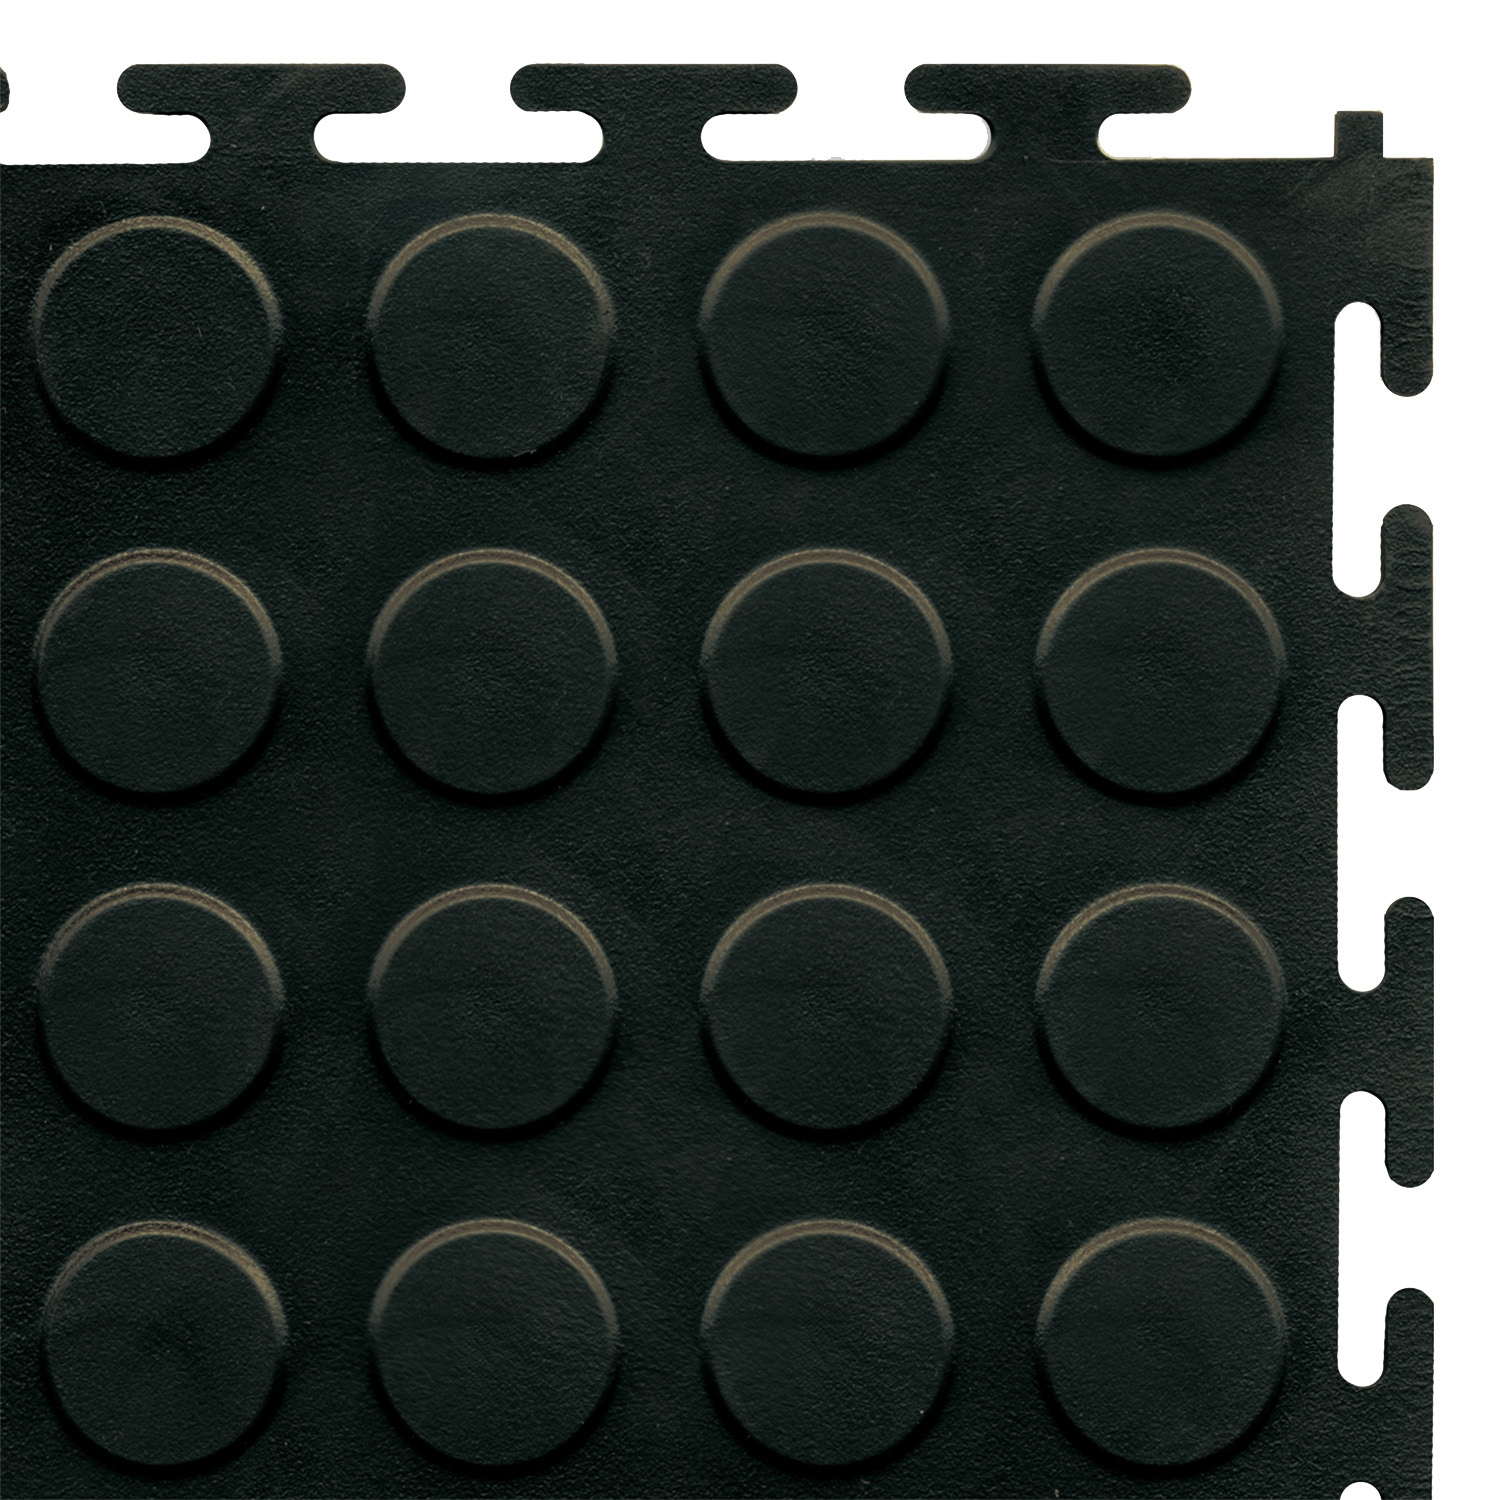 Standard floor tile (black/studded)